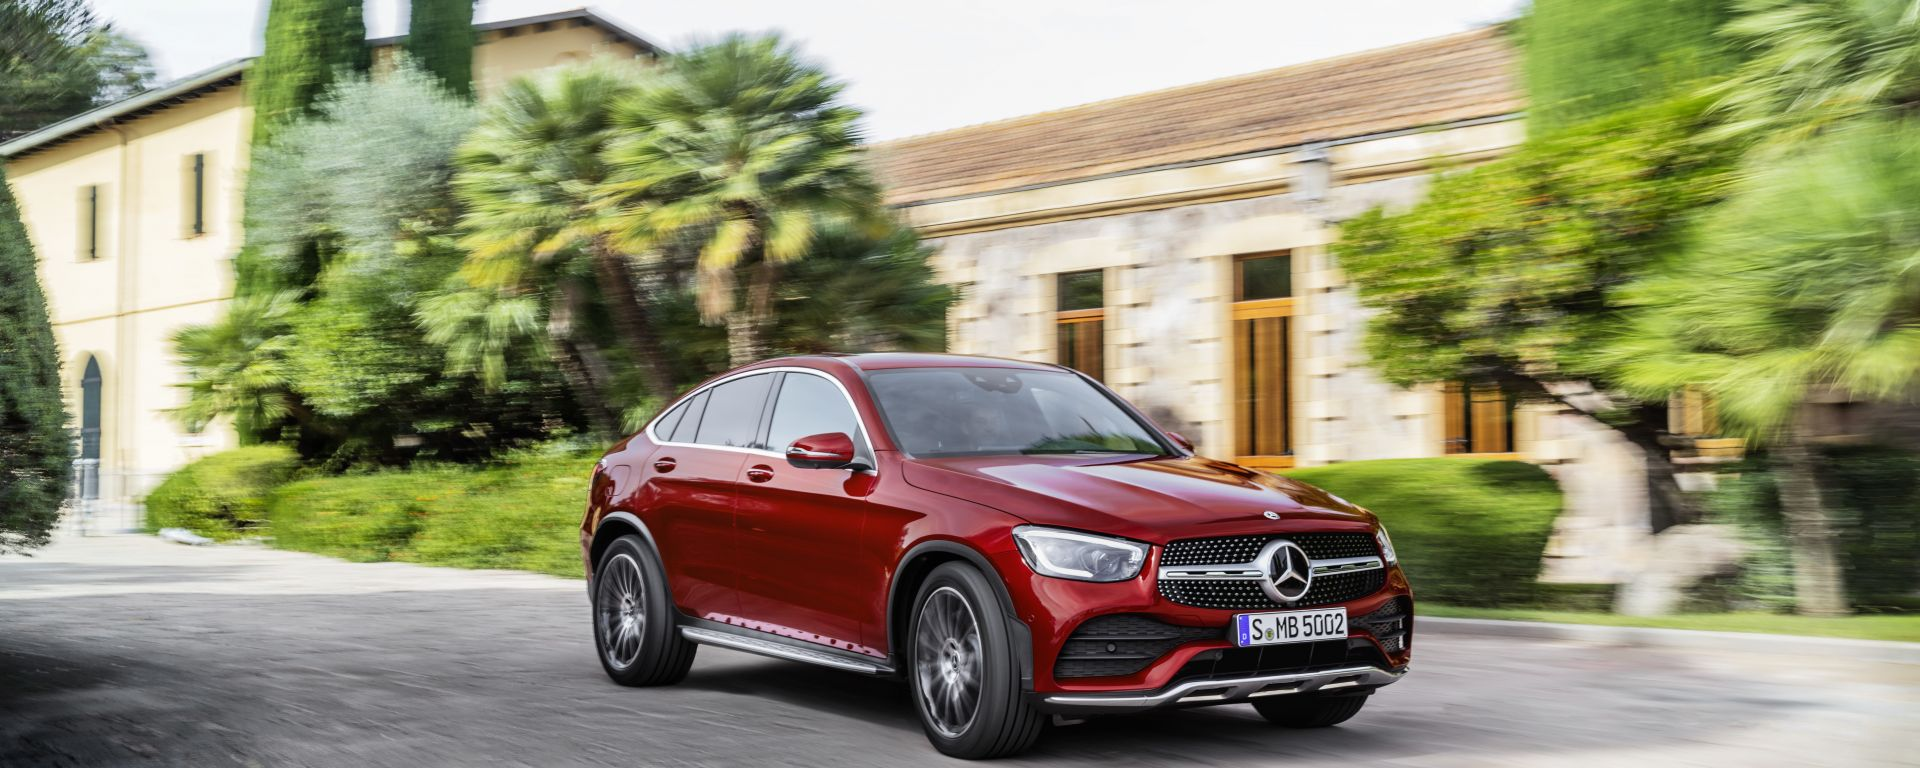 Nuova Mercedes GLC Coupé 2019: come cambia con il facelift